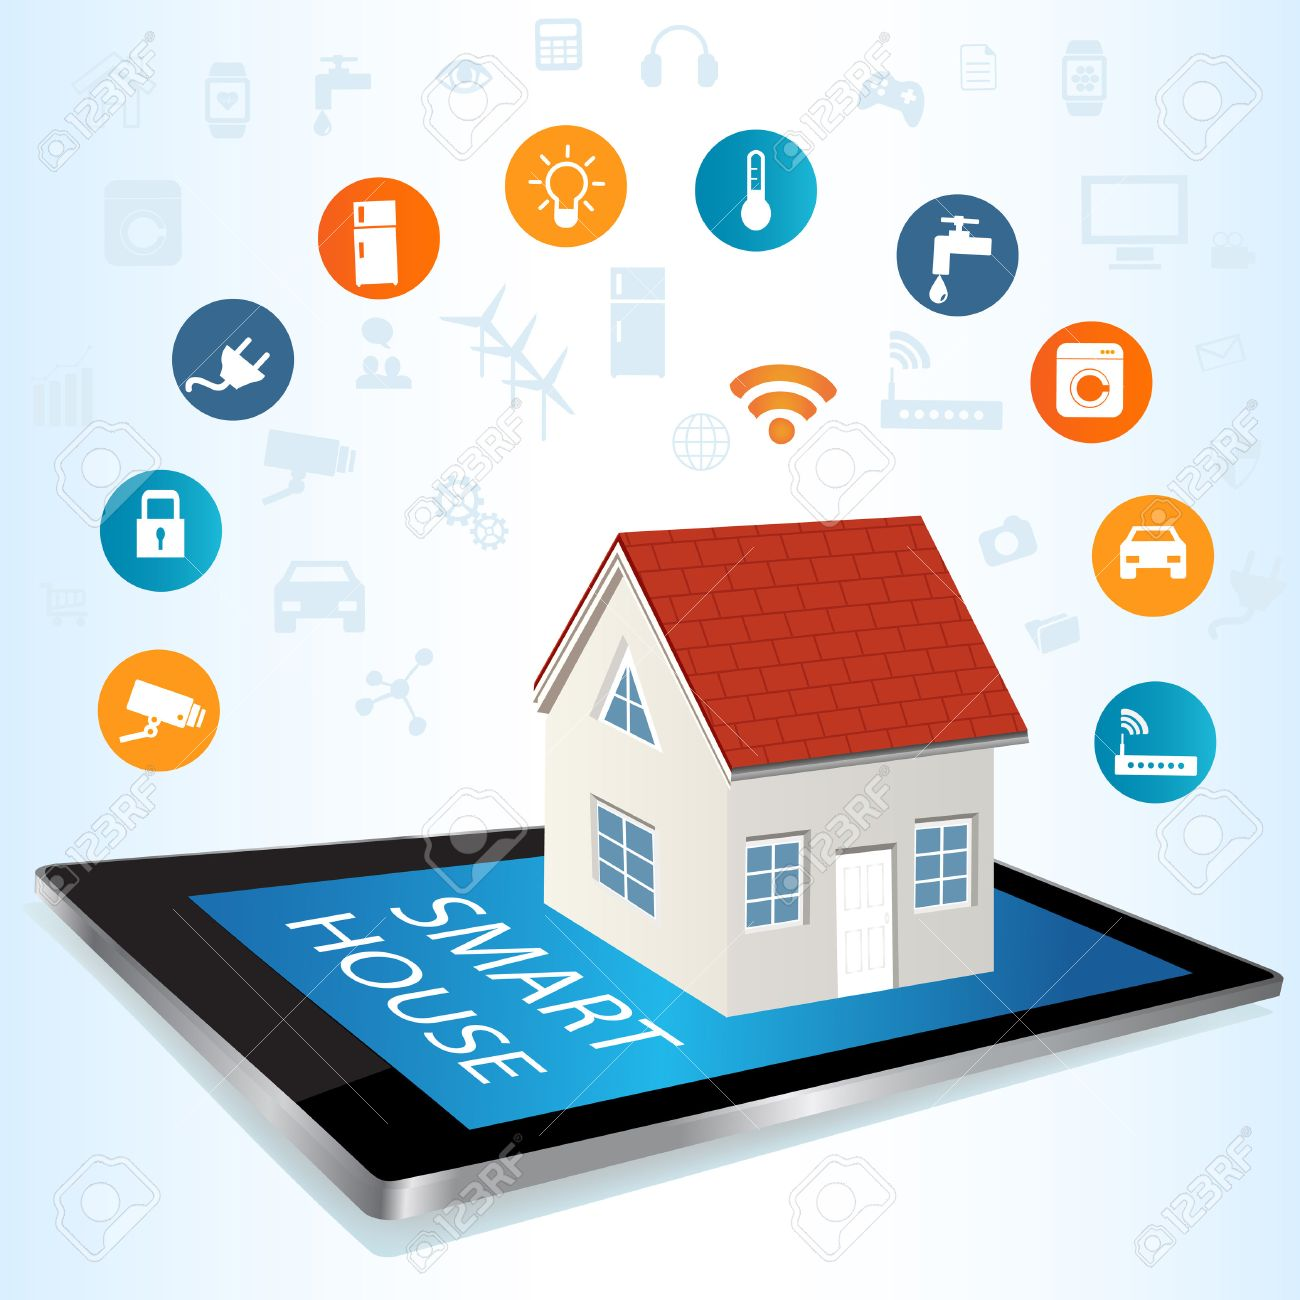 Modern Digital Tablet PC With Smart House Apps Internet Of Things